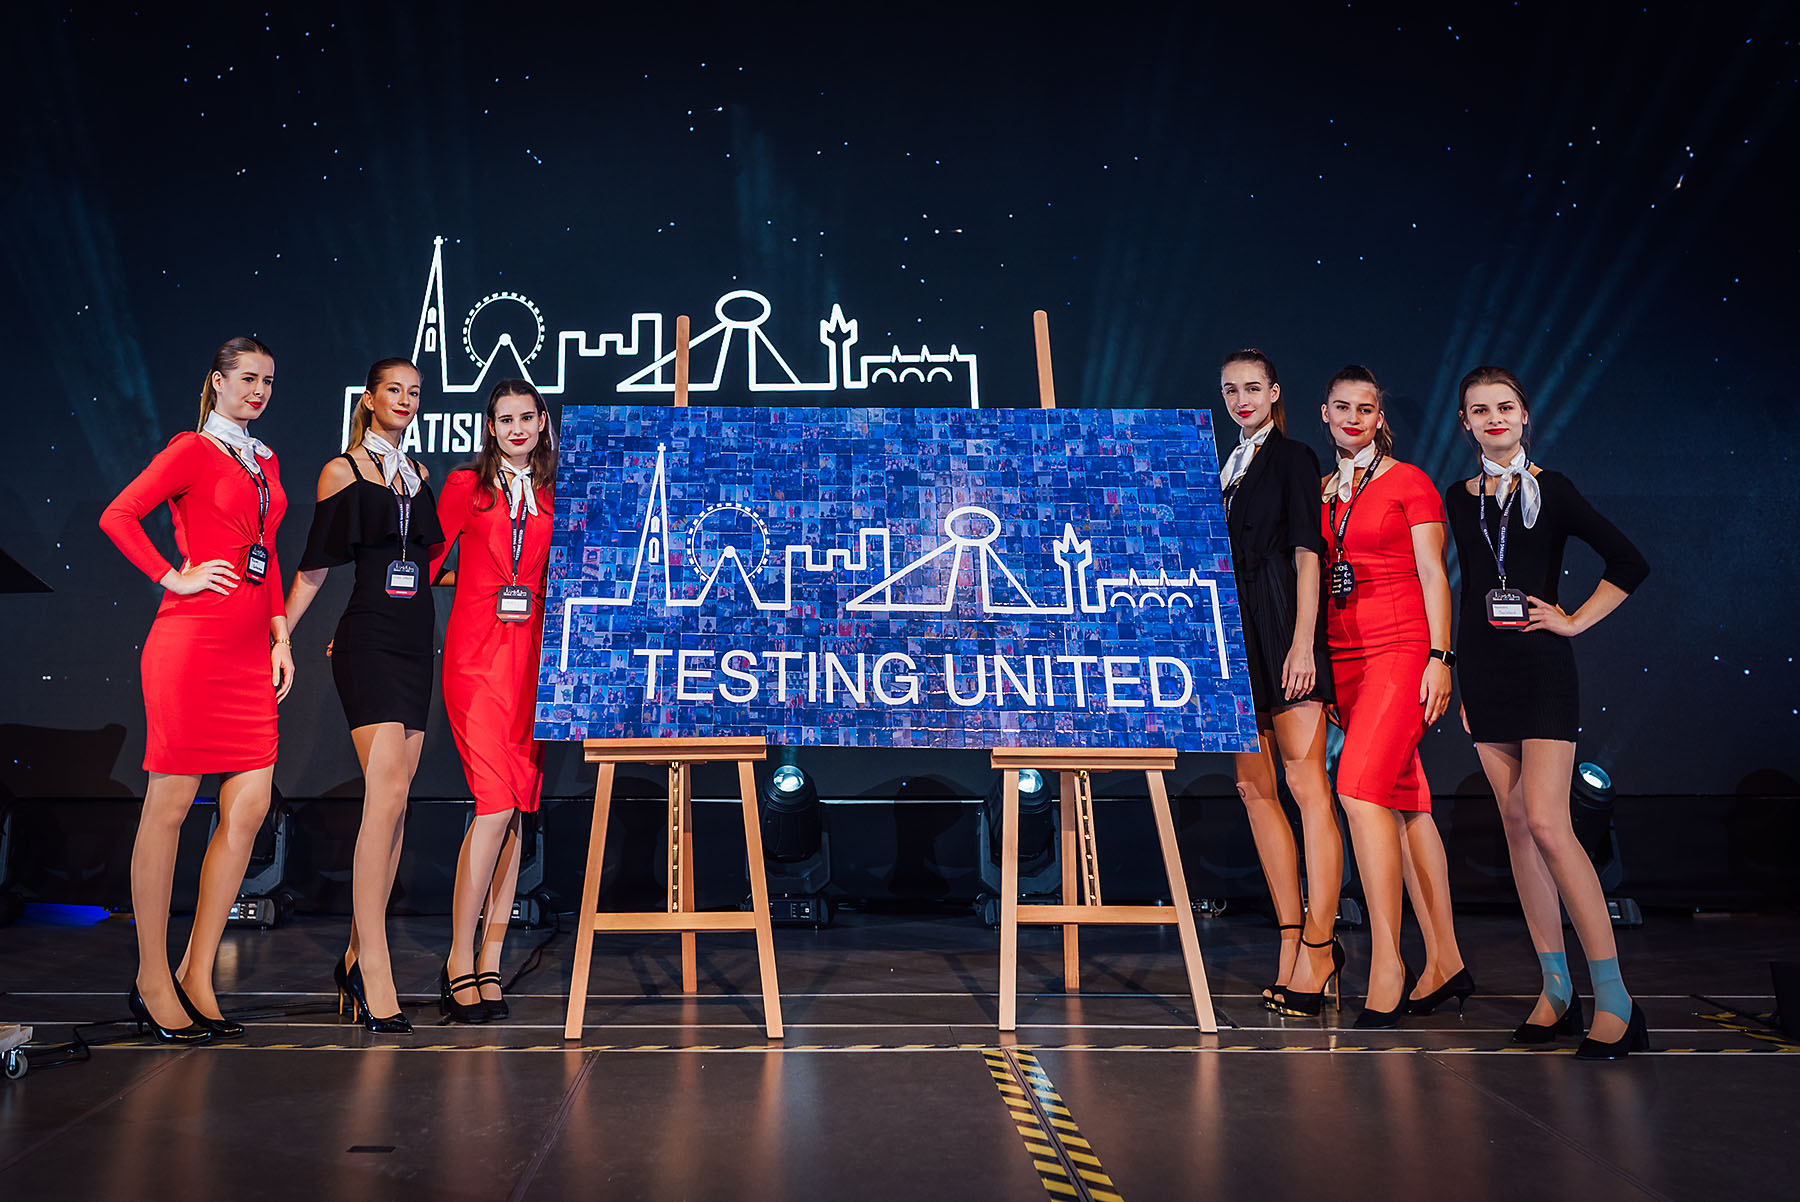 Konferencia Testing United 2019 - vieden, testing-united, it - eventovy fotograf